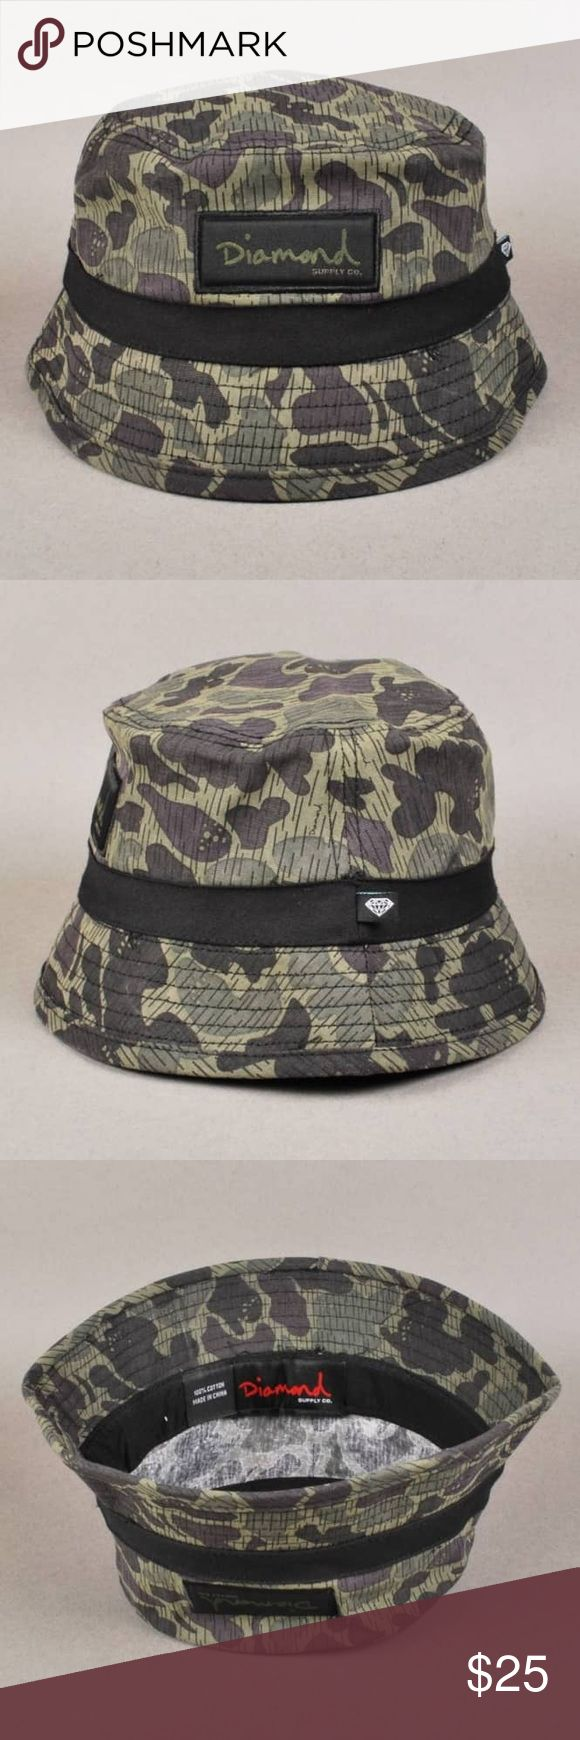 💎 Camo Bucket Hat Brand new never worn diamond supply co rain camo bucket hat - these retail for $40+shipping and tax, nice relaxed fit will fit anyone! Diamond Supply Co. Accessories Hats